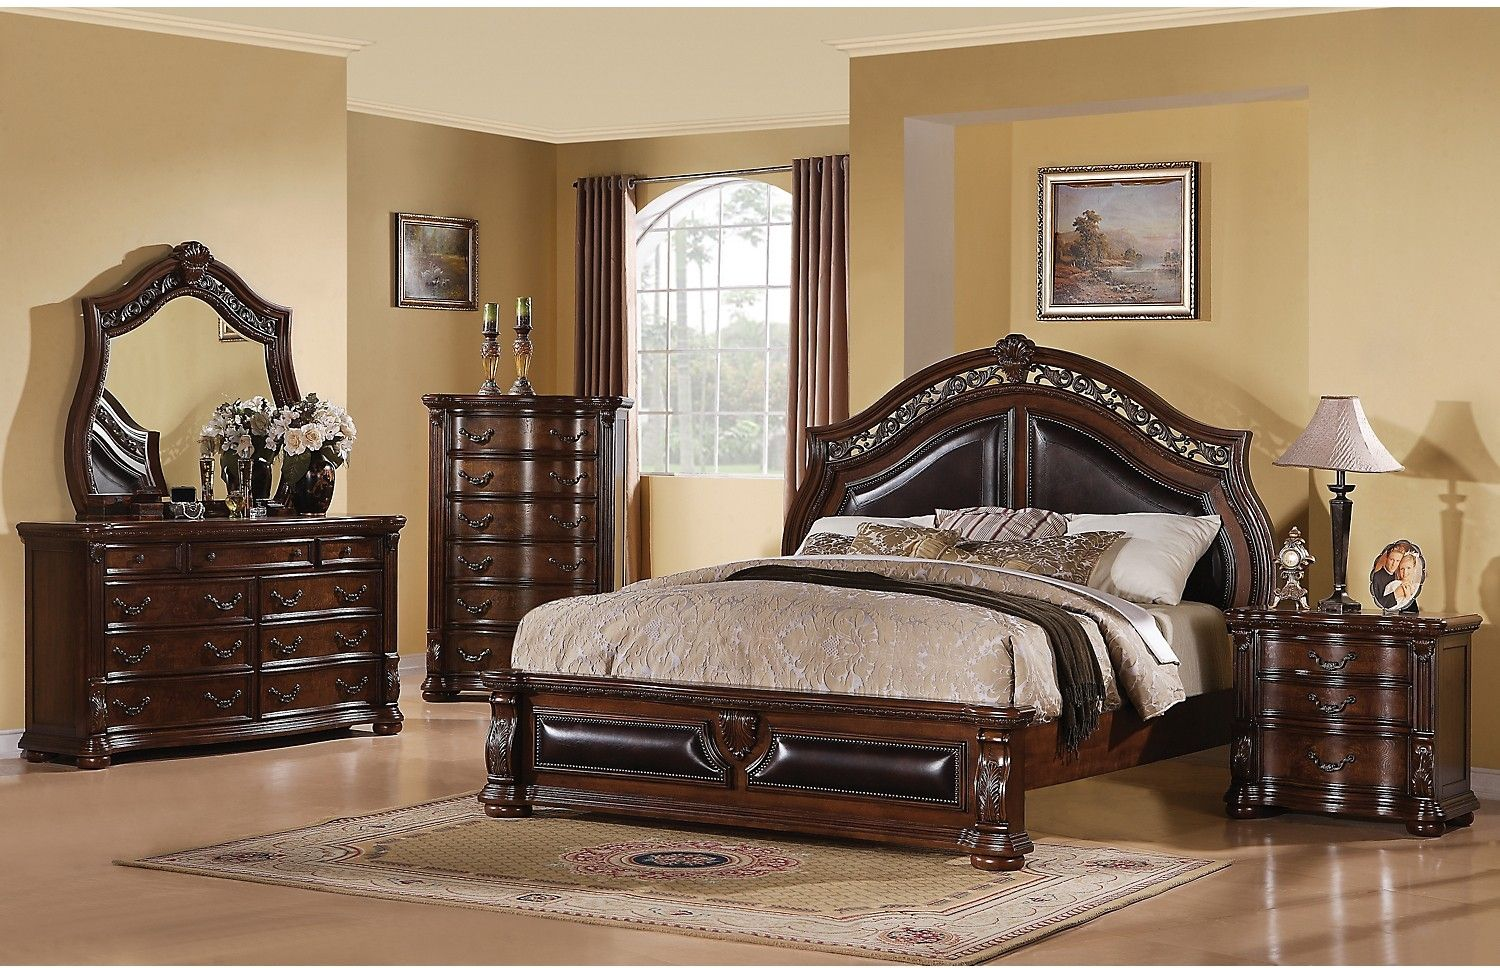 Bedroom Furniture Morocco 8Piece Queen Bedroom Package